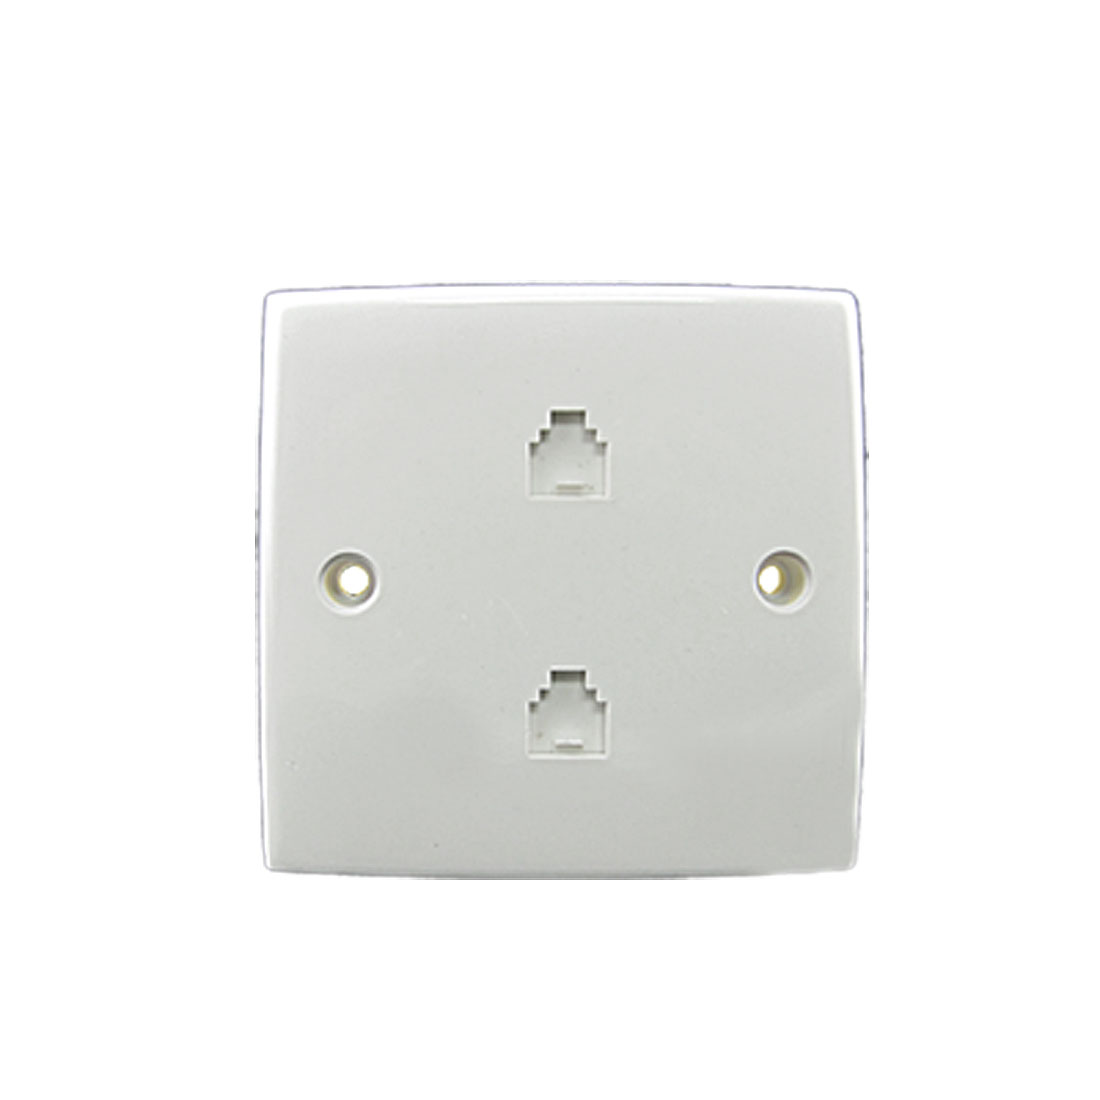 6P 4C RJ11 Telephone 2 Gang Outlet Socket Wall Plate Panel